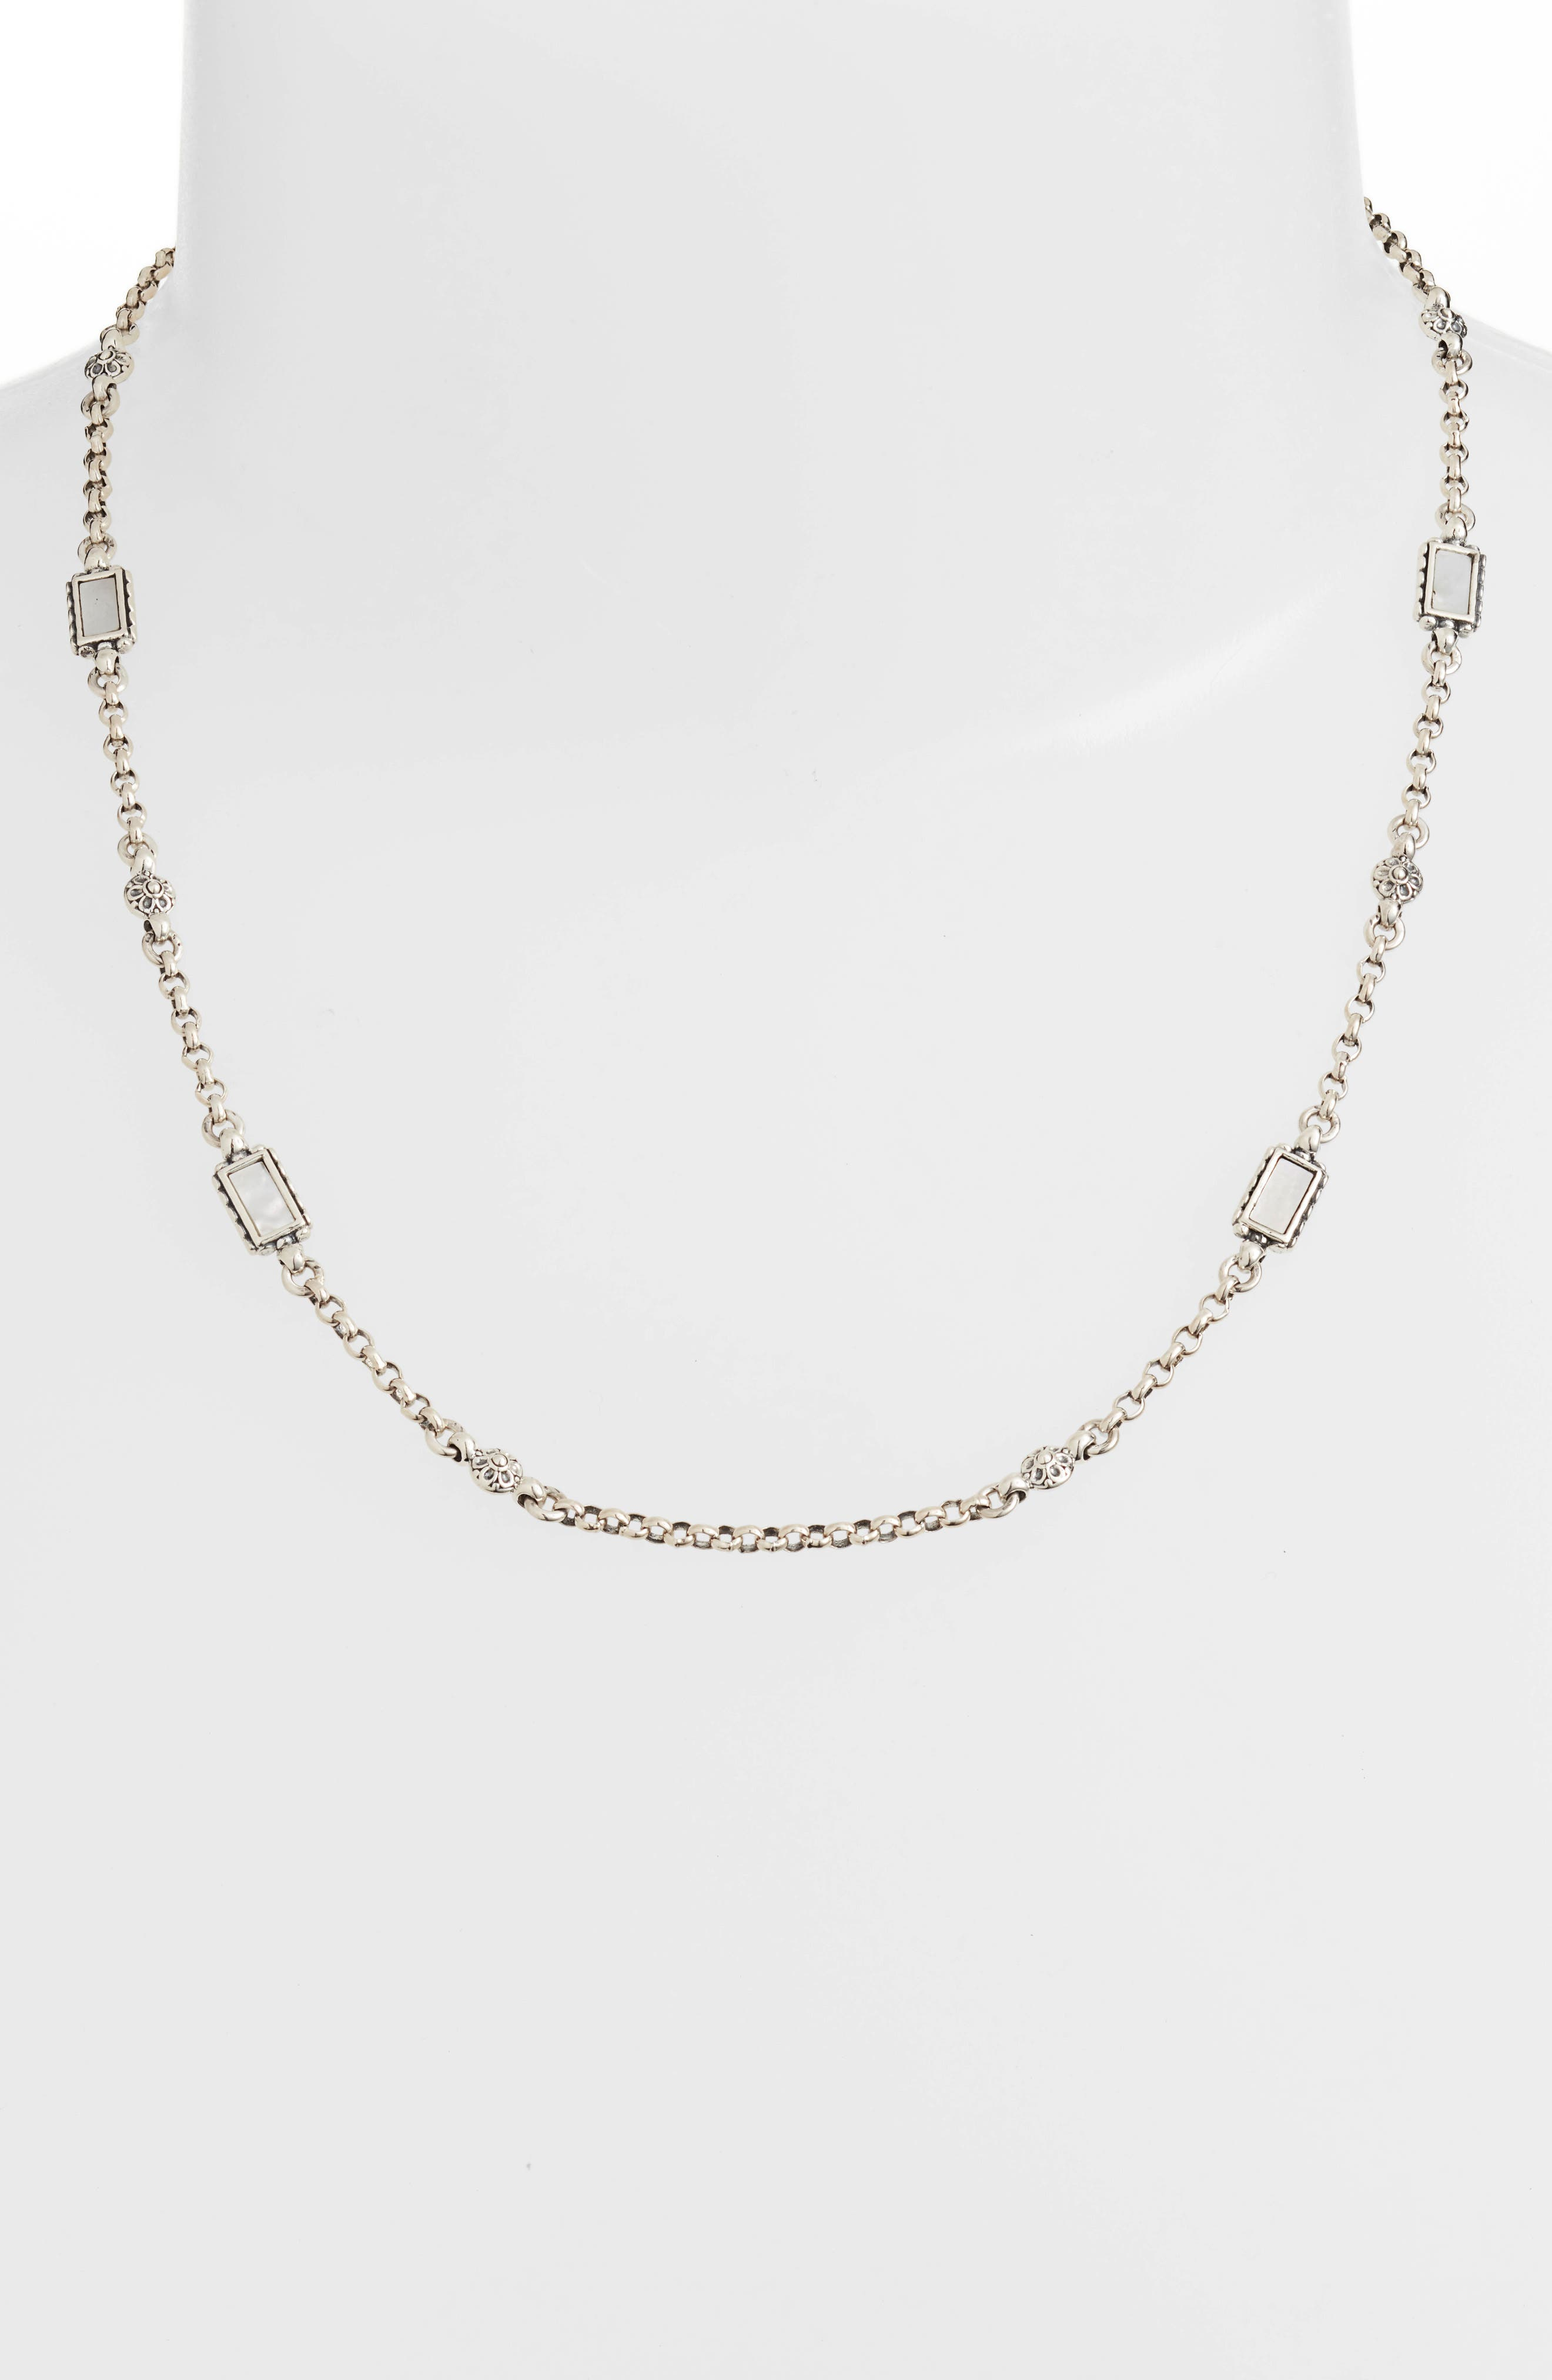 Mother of Pearl Sterling Necklace,                             Alternate thumbnail 2, color,                             SILVER/ GOLD/ WHITE